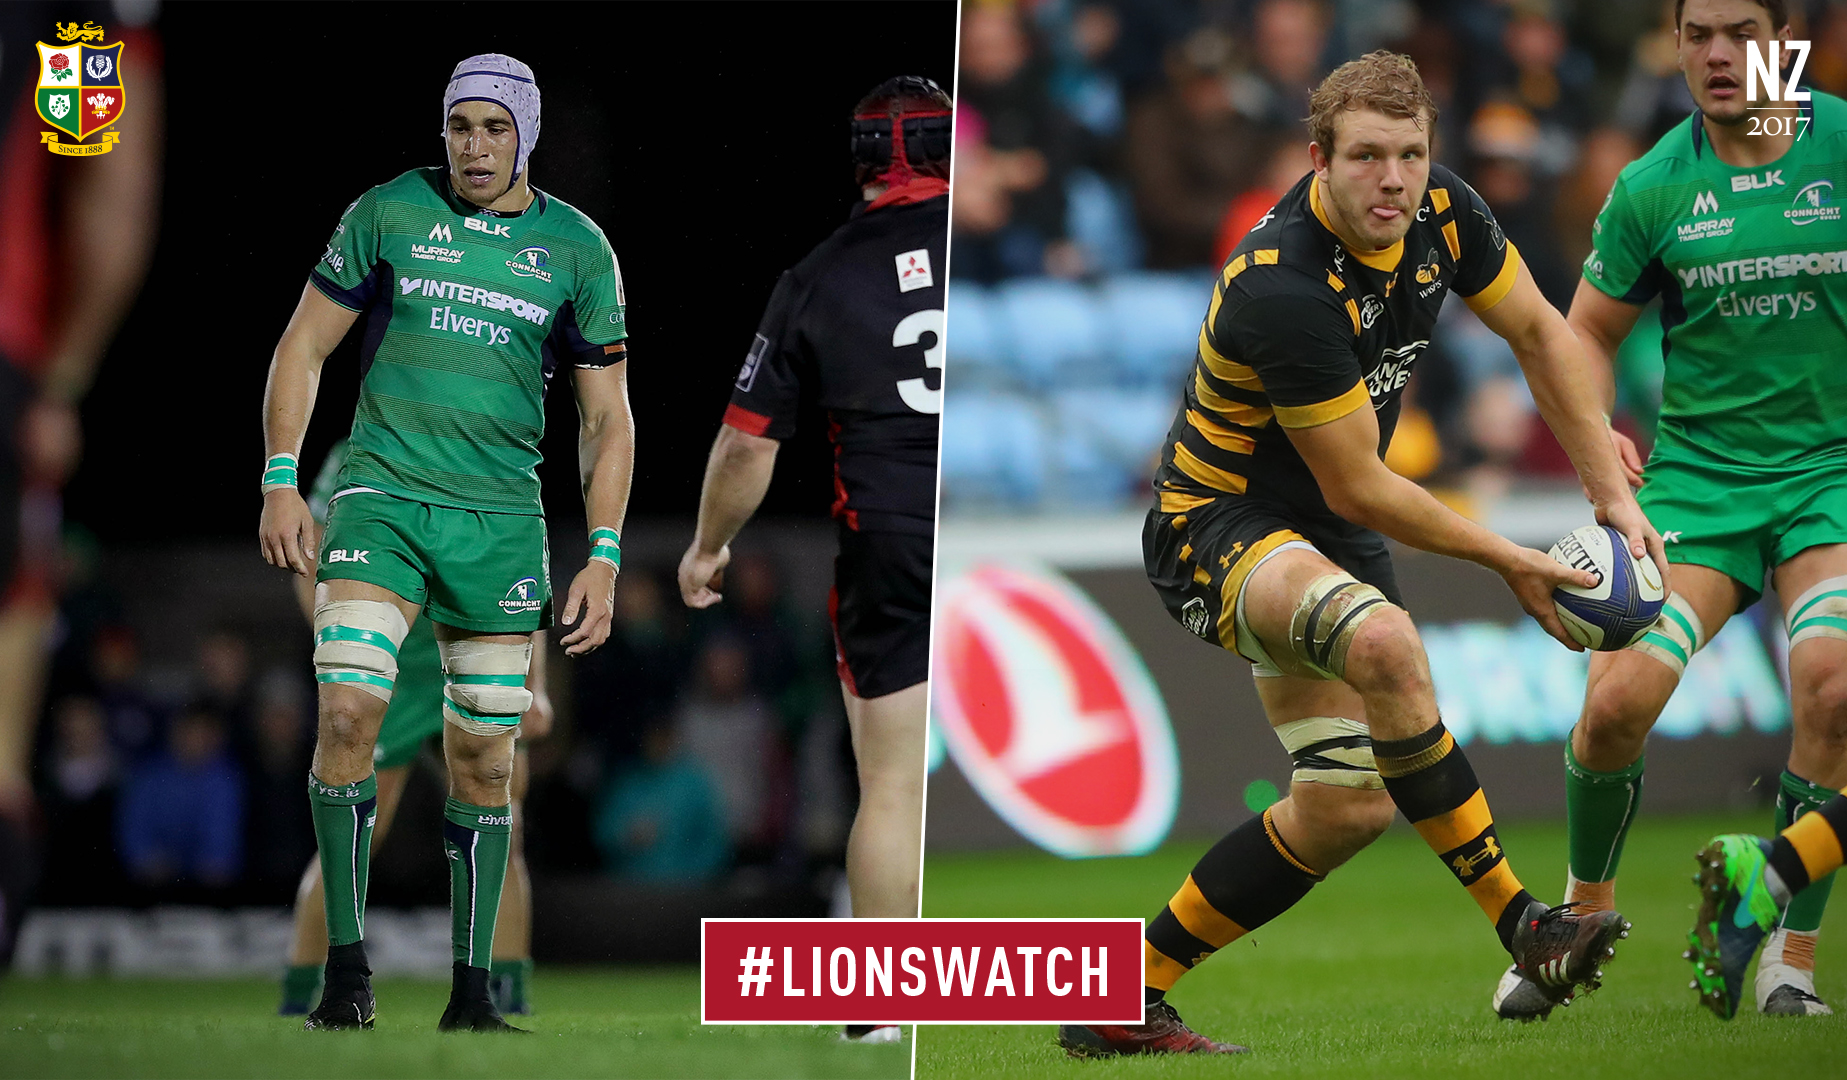 LionsWatch: Dillane and Launchbury renew rivalry on a packed European weekend